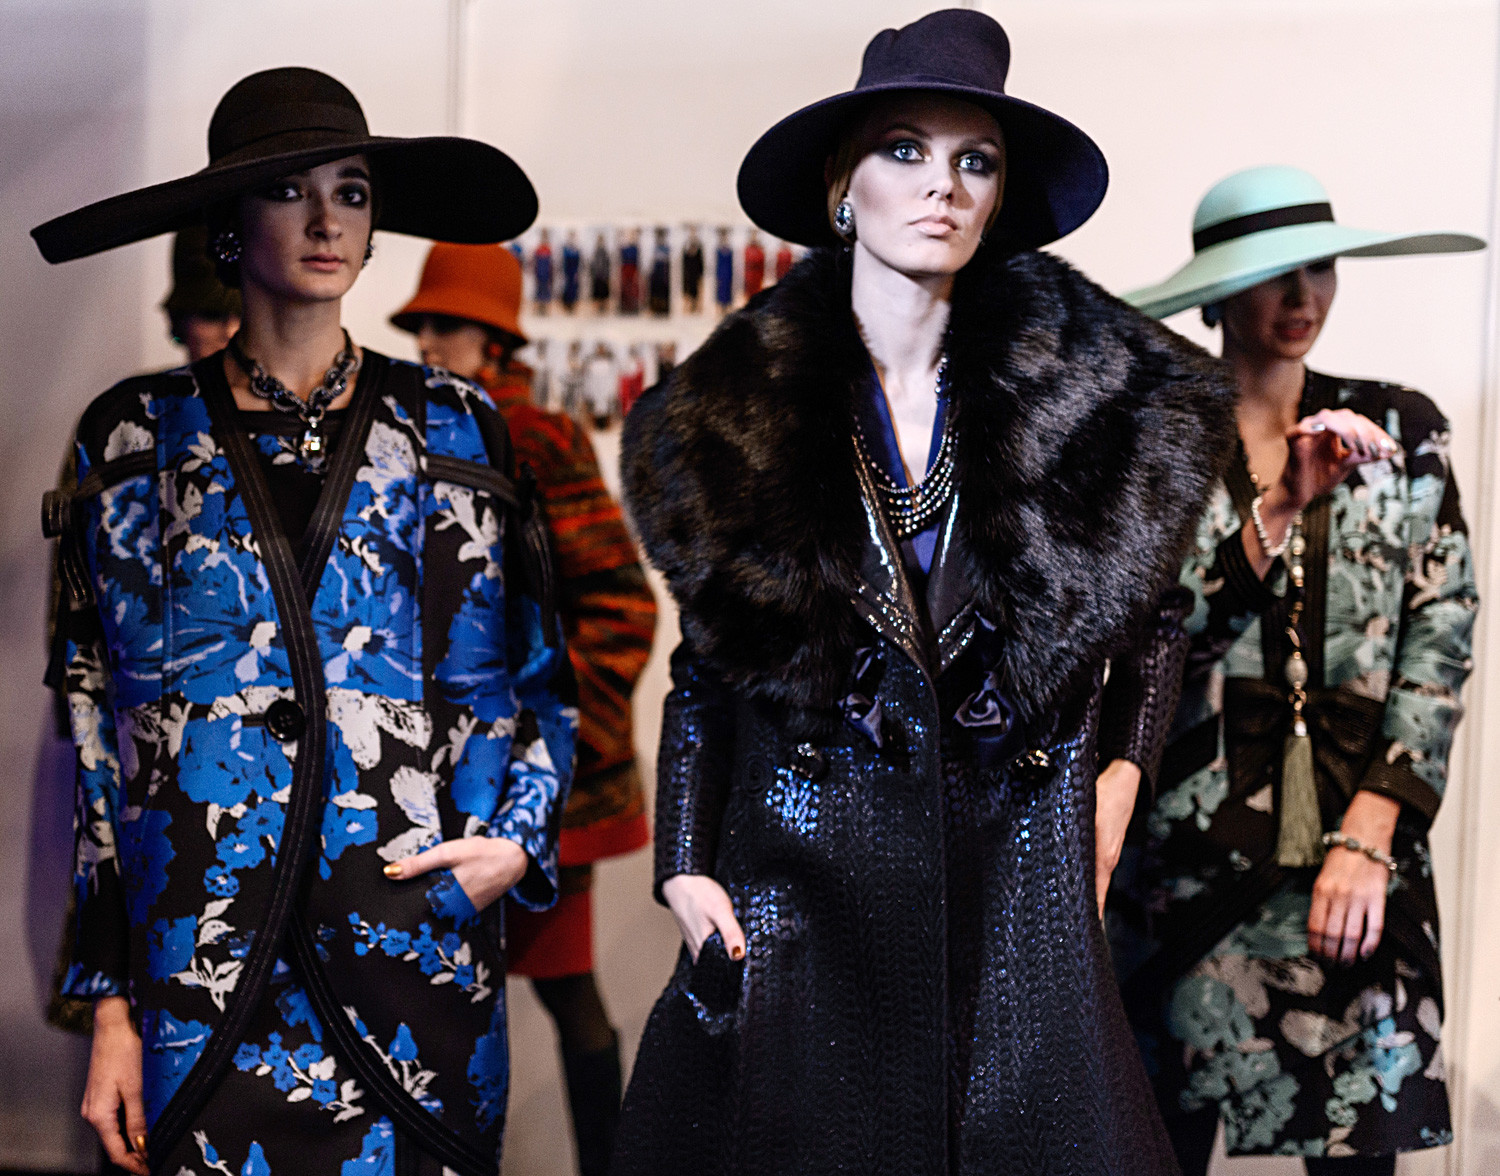 Models wear clothing by Slava Zaitsev at Mercedes-Benz Fashion Week in Moscow